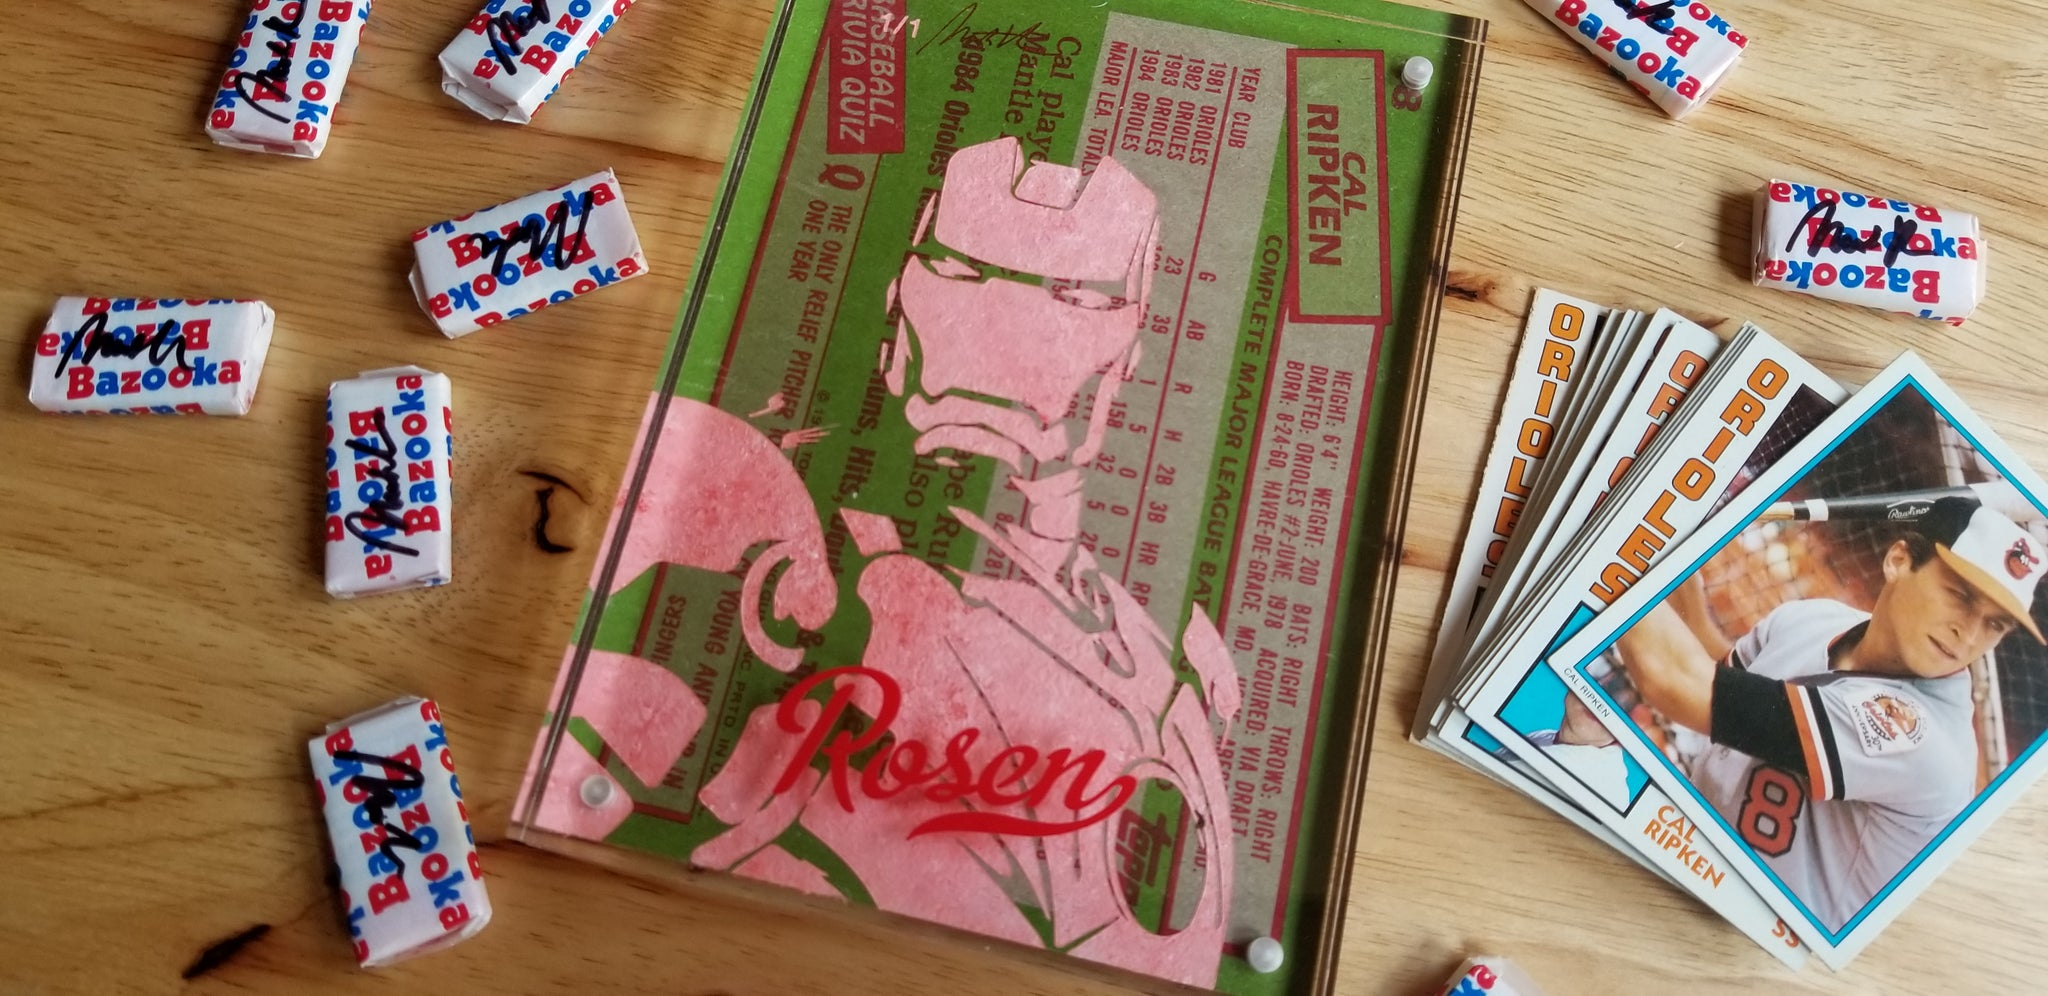 Baseball card art by Matthew Lee Rosen (aka Matthew Rosen) - Cal Ripken Jr. Iron Man Jumbo